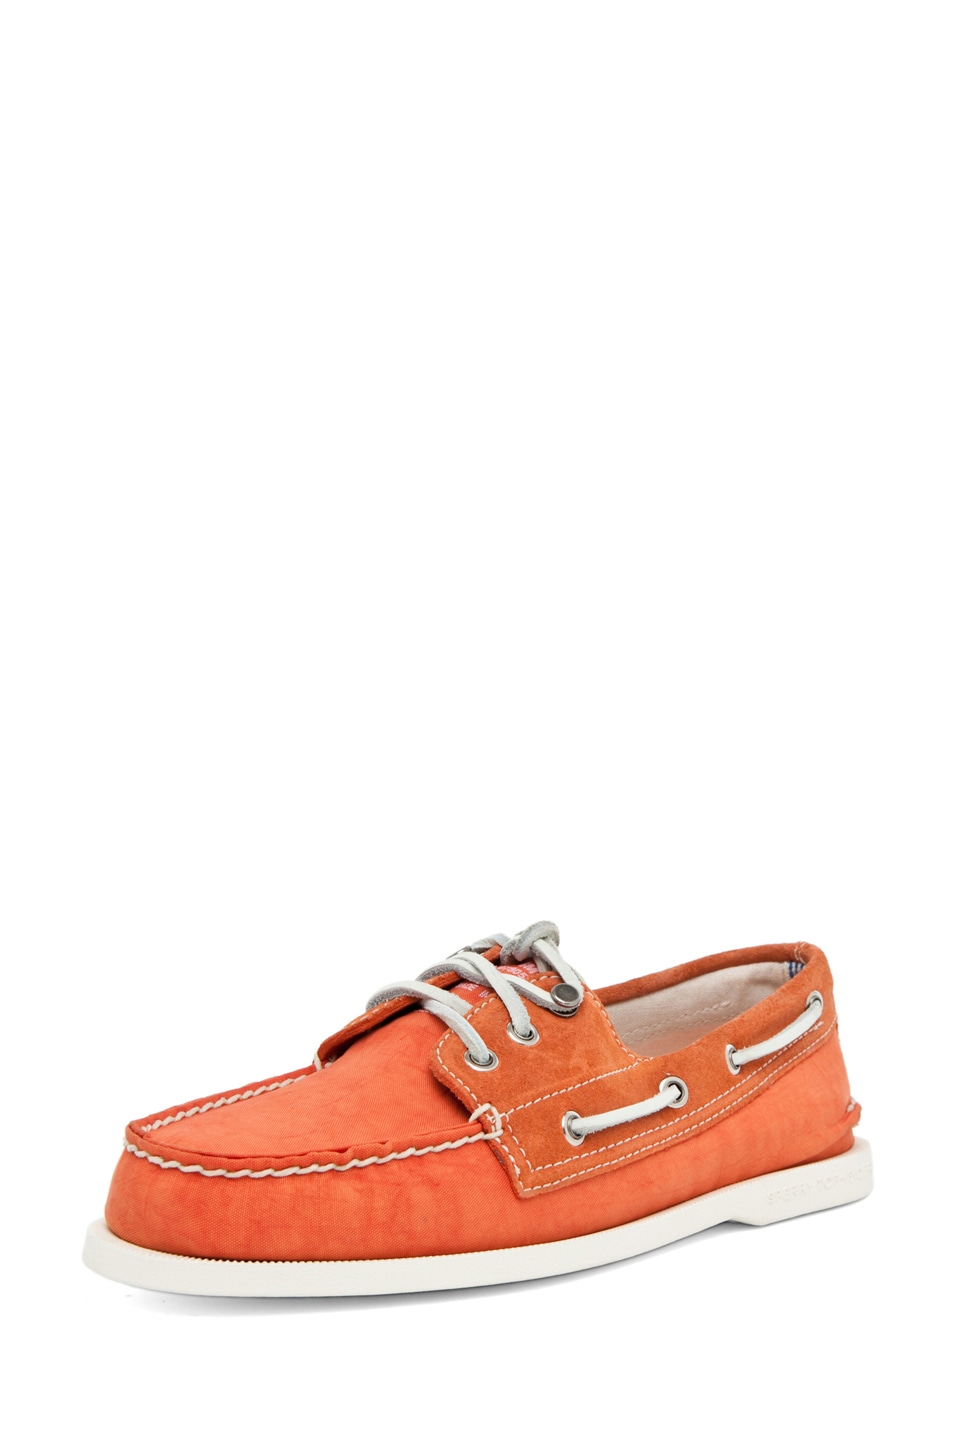 Image 2 of Band of Outsiders x Sperry Top-Sider 3 Eye Boat Shoe in Orange